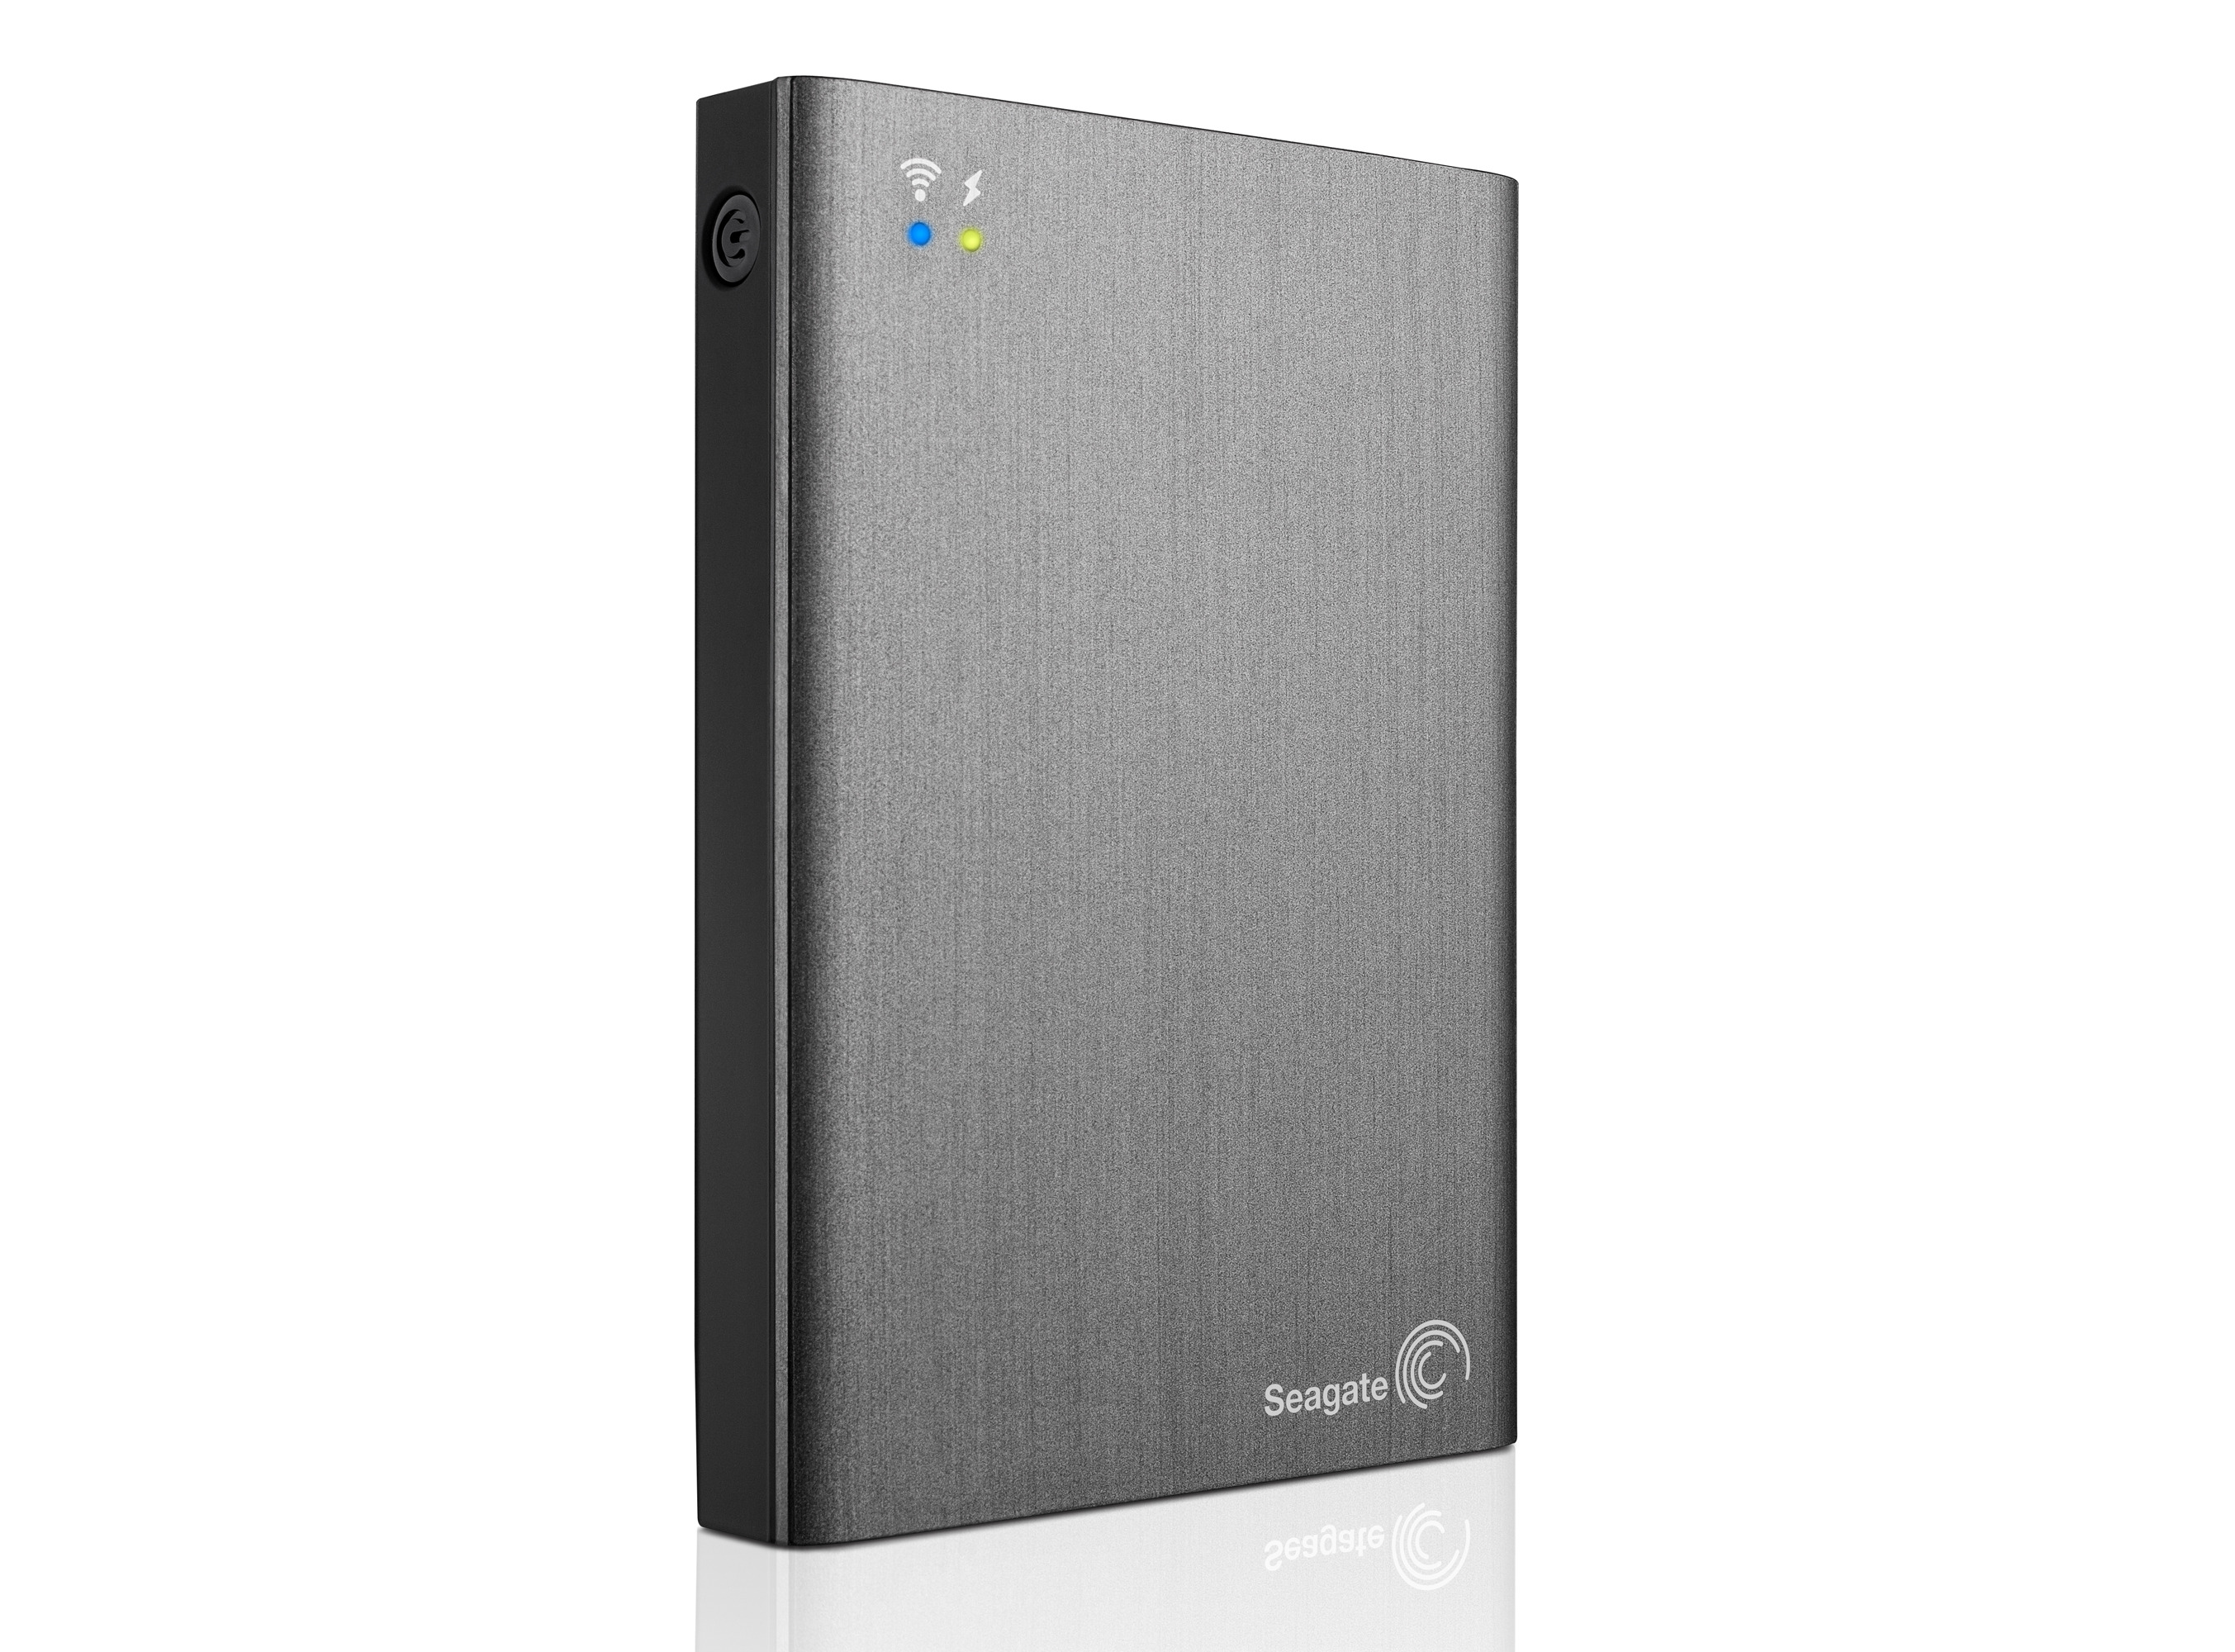 Ổ Cứng HDD Seagate Wireless Plus Mobile Device Storage 1TB (STCK1000300)